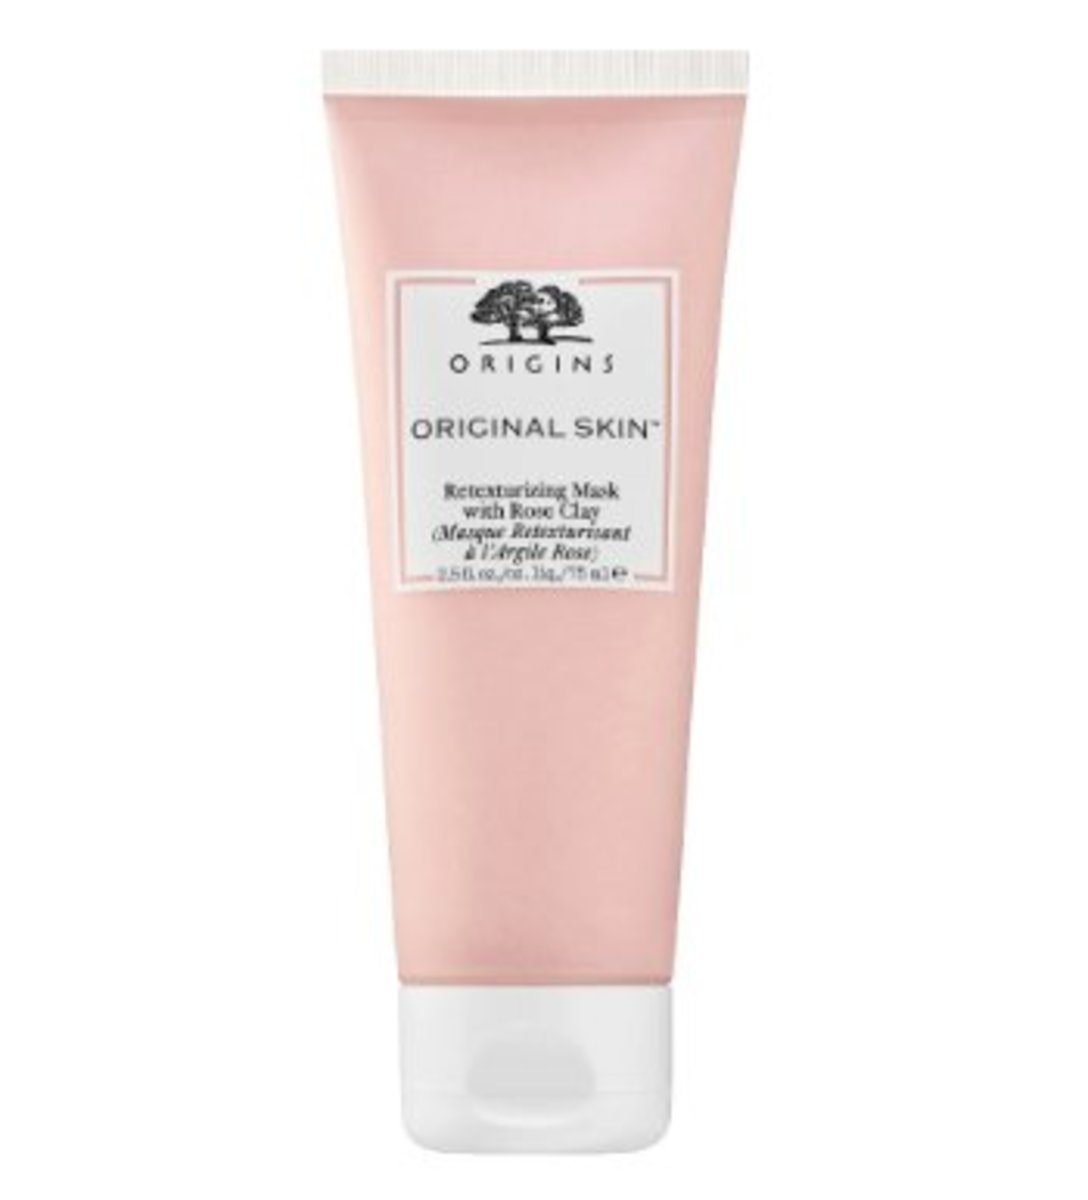 Retexturizing Mask With Rose Clay 75ml